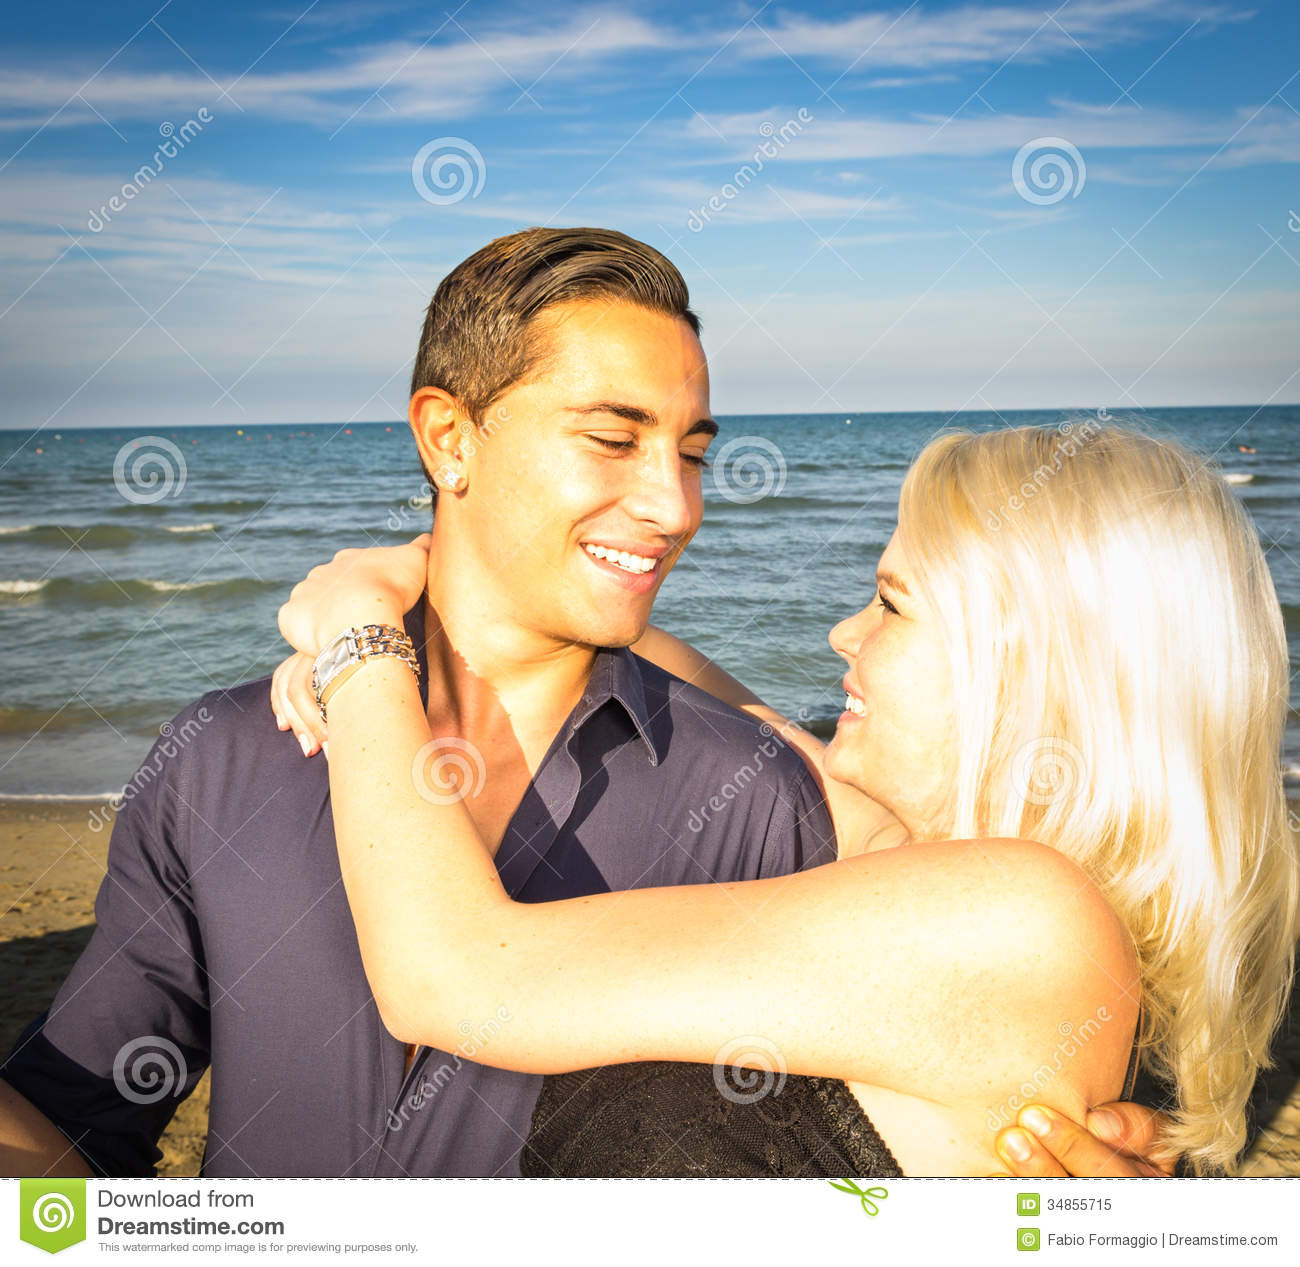 Couple At The Beach Stock Image Image Of Caucasian: Couple Happy On The Beach Stock Image. Image Of Dress